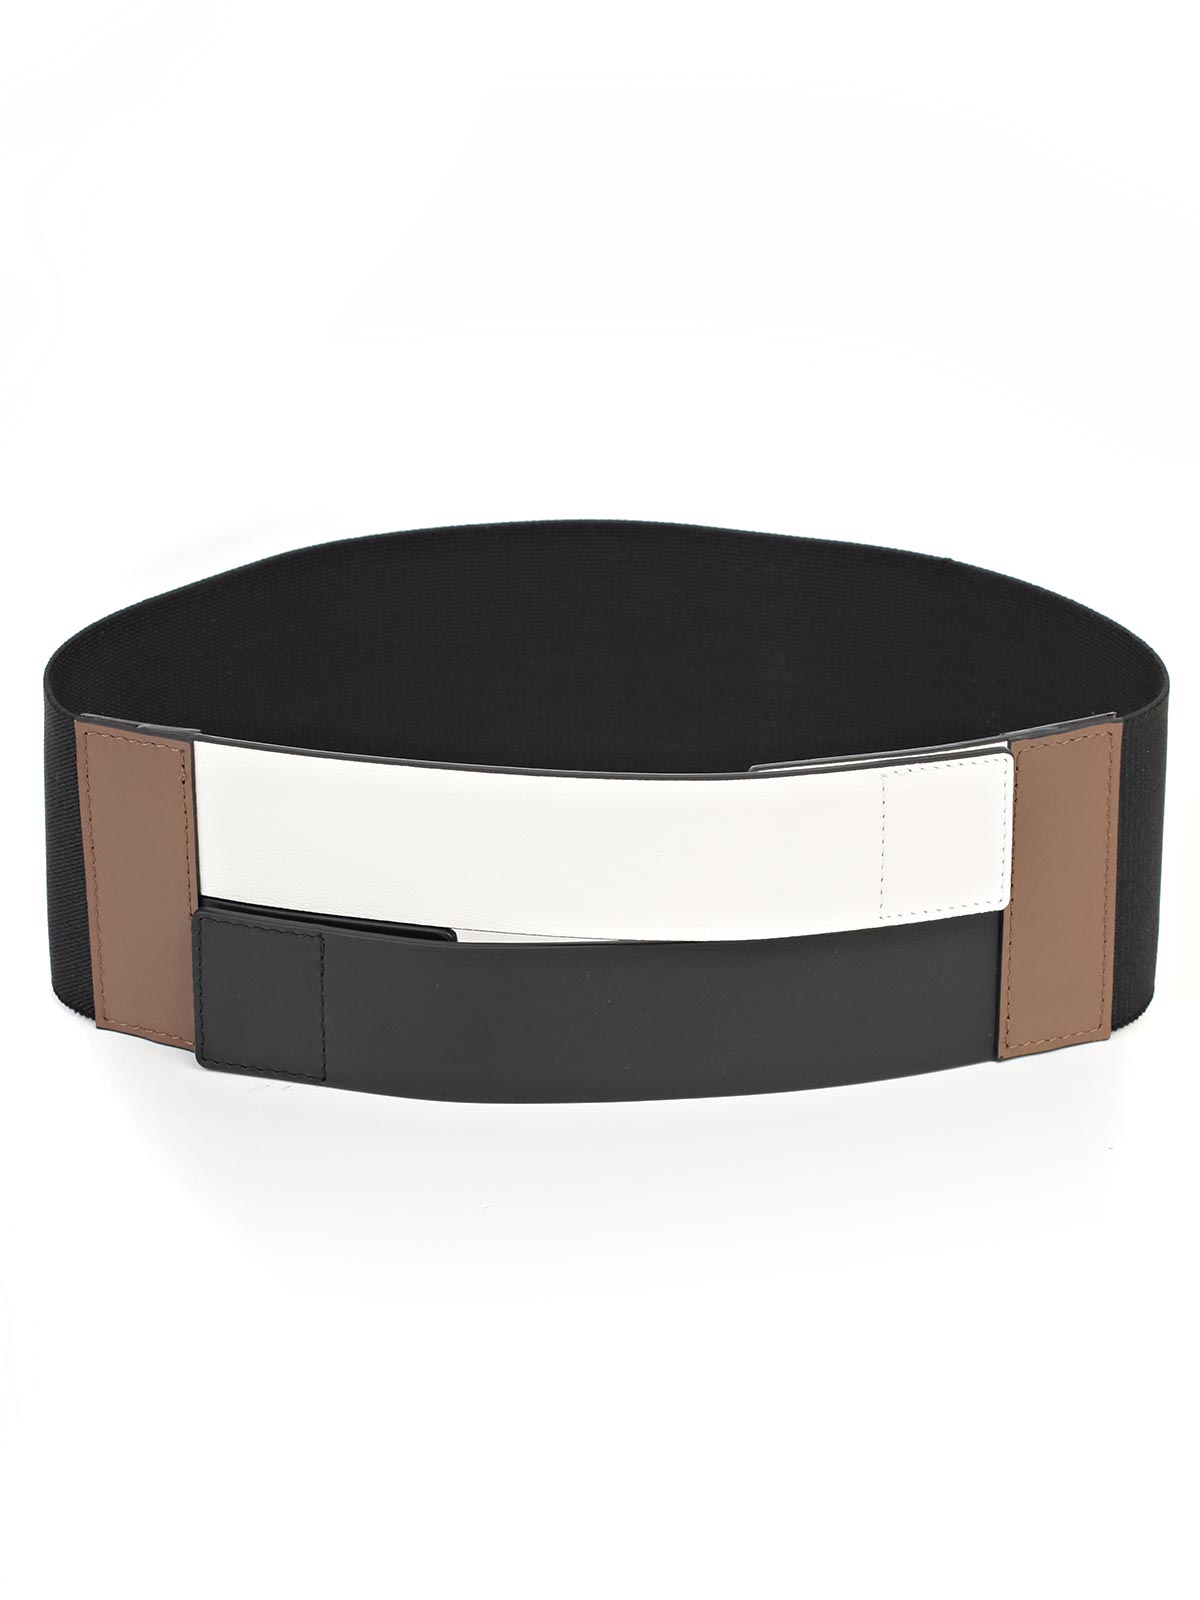 Picture of MARNI BELT CINTURA VITA ALTA BICOLOR